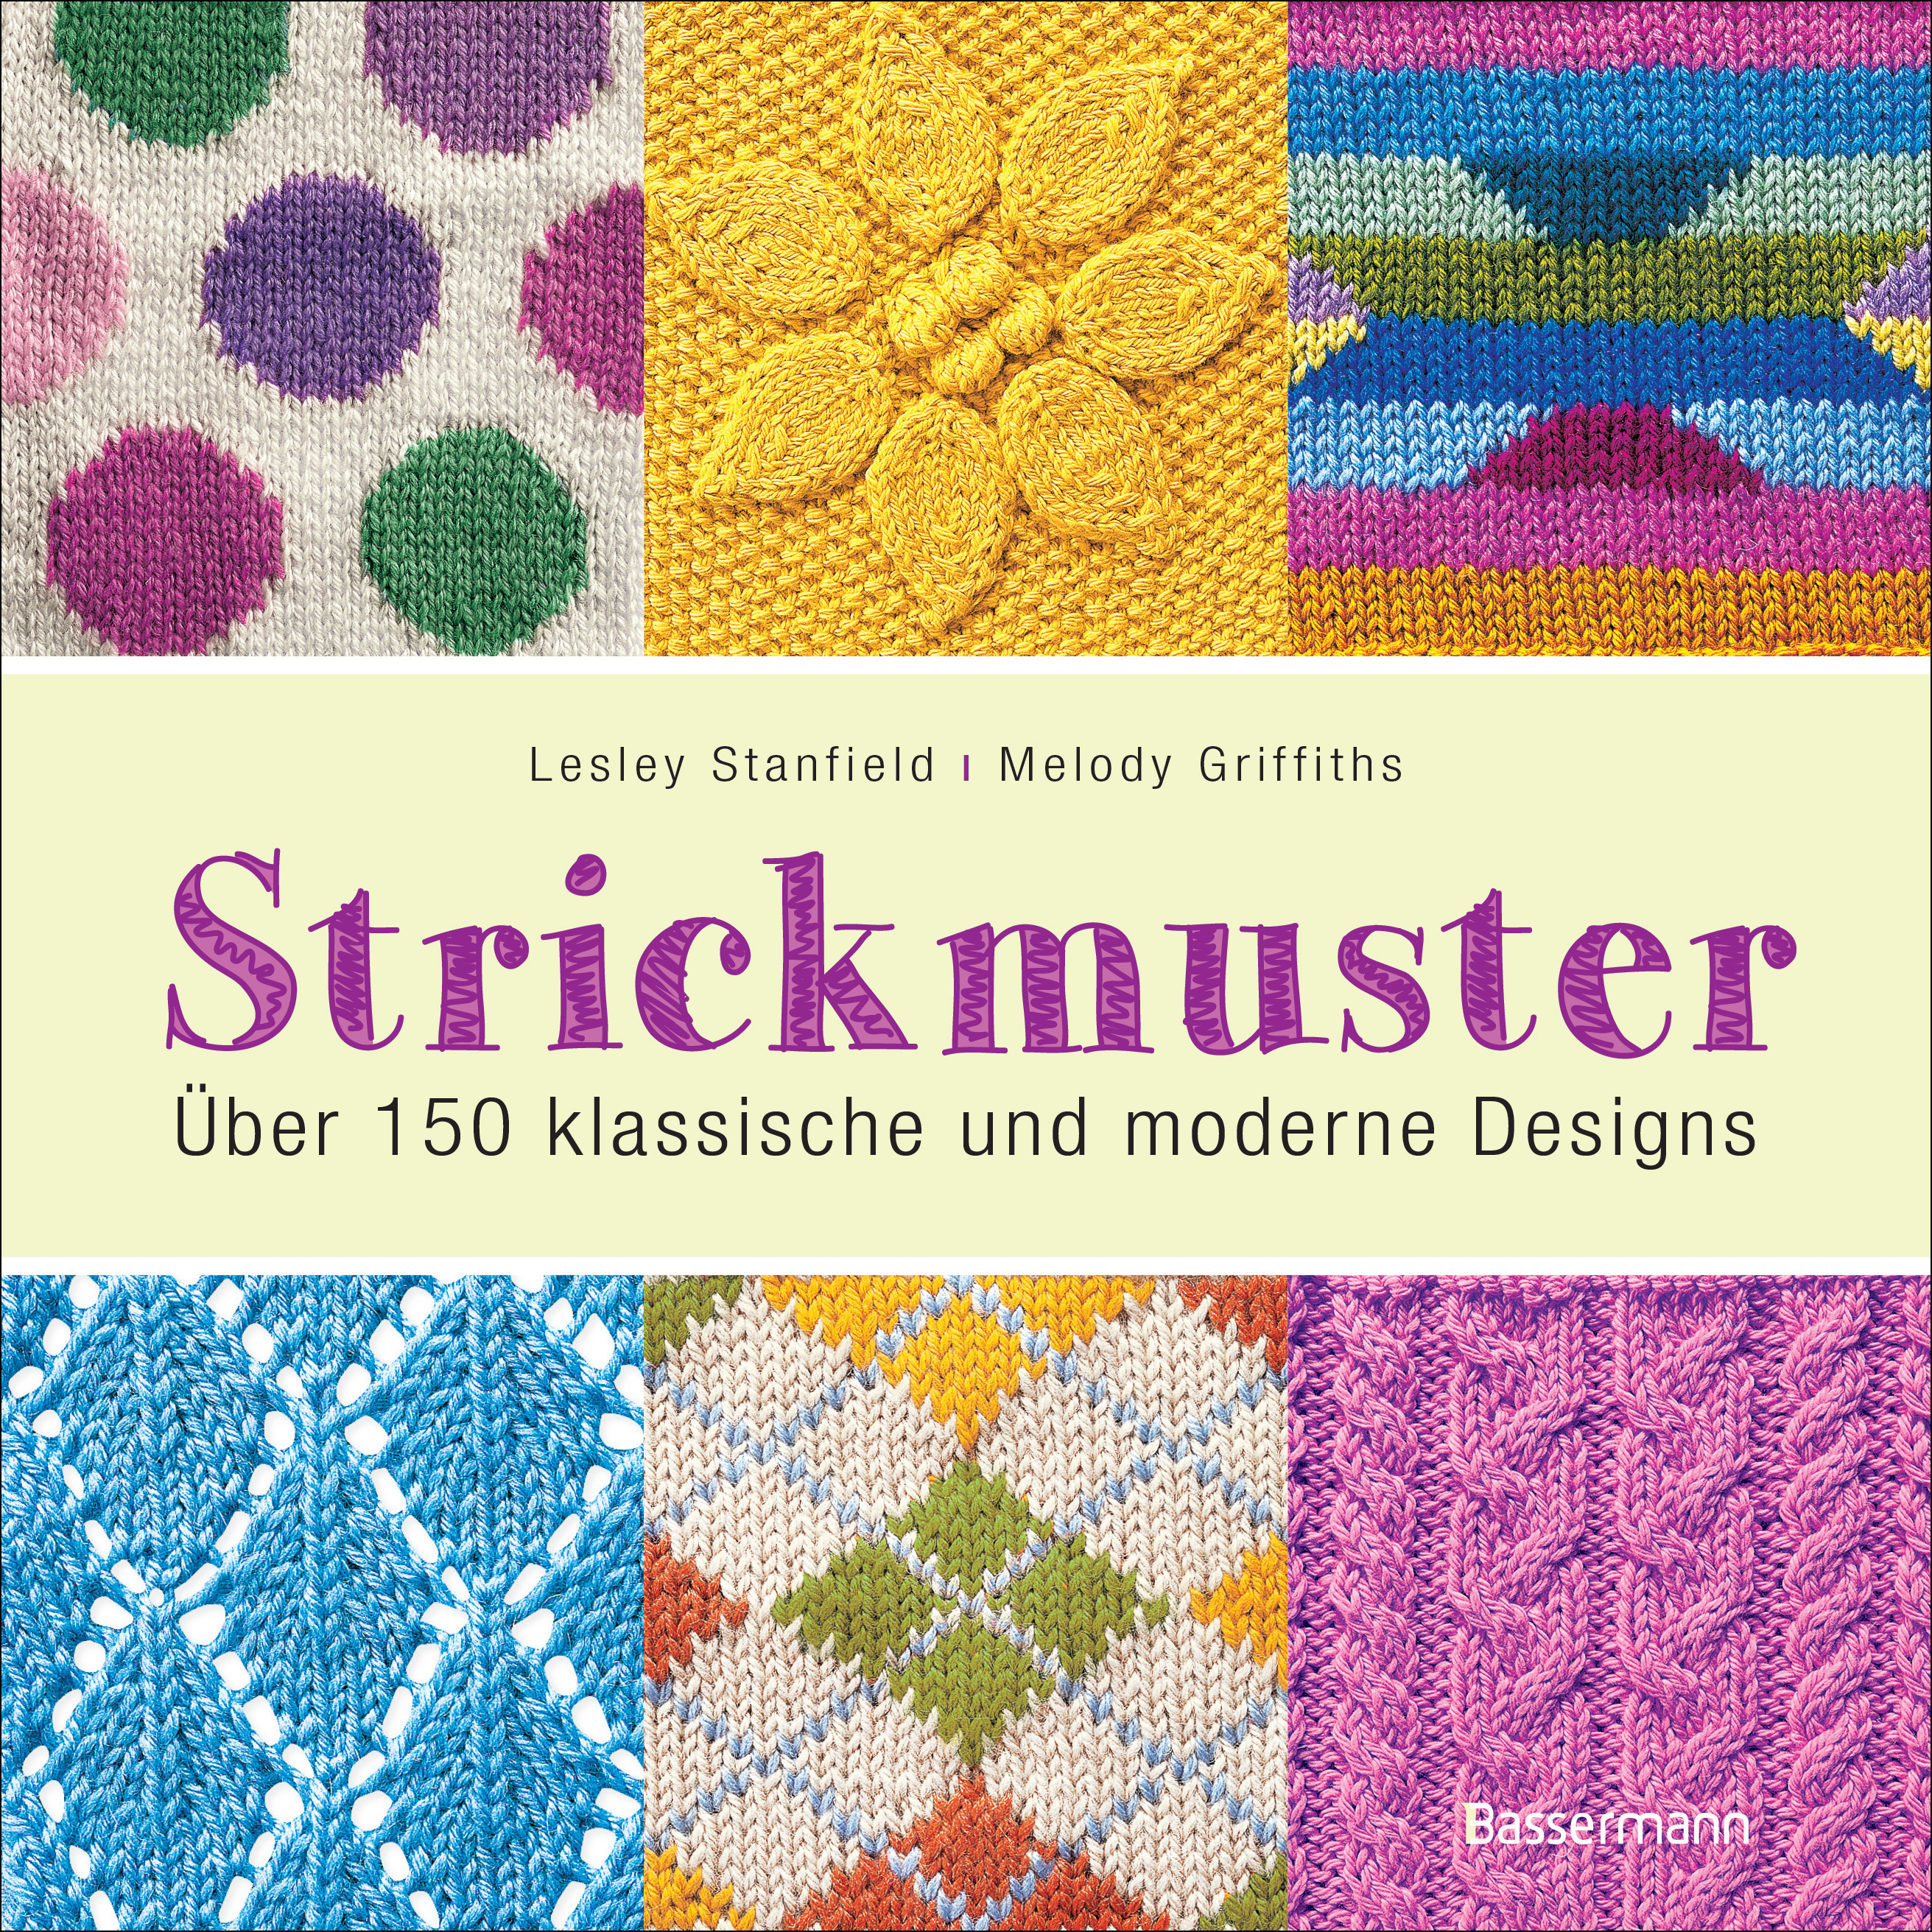 strickmuster blick ins buch cover - Strick Muster